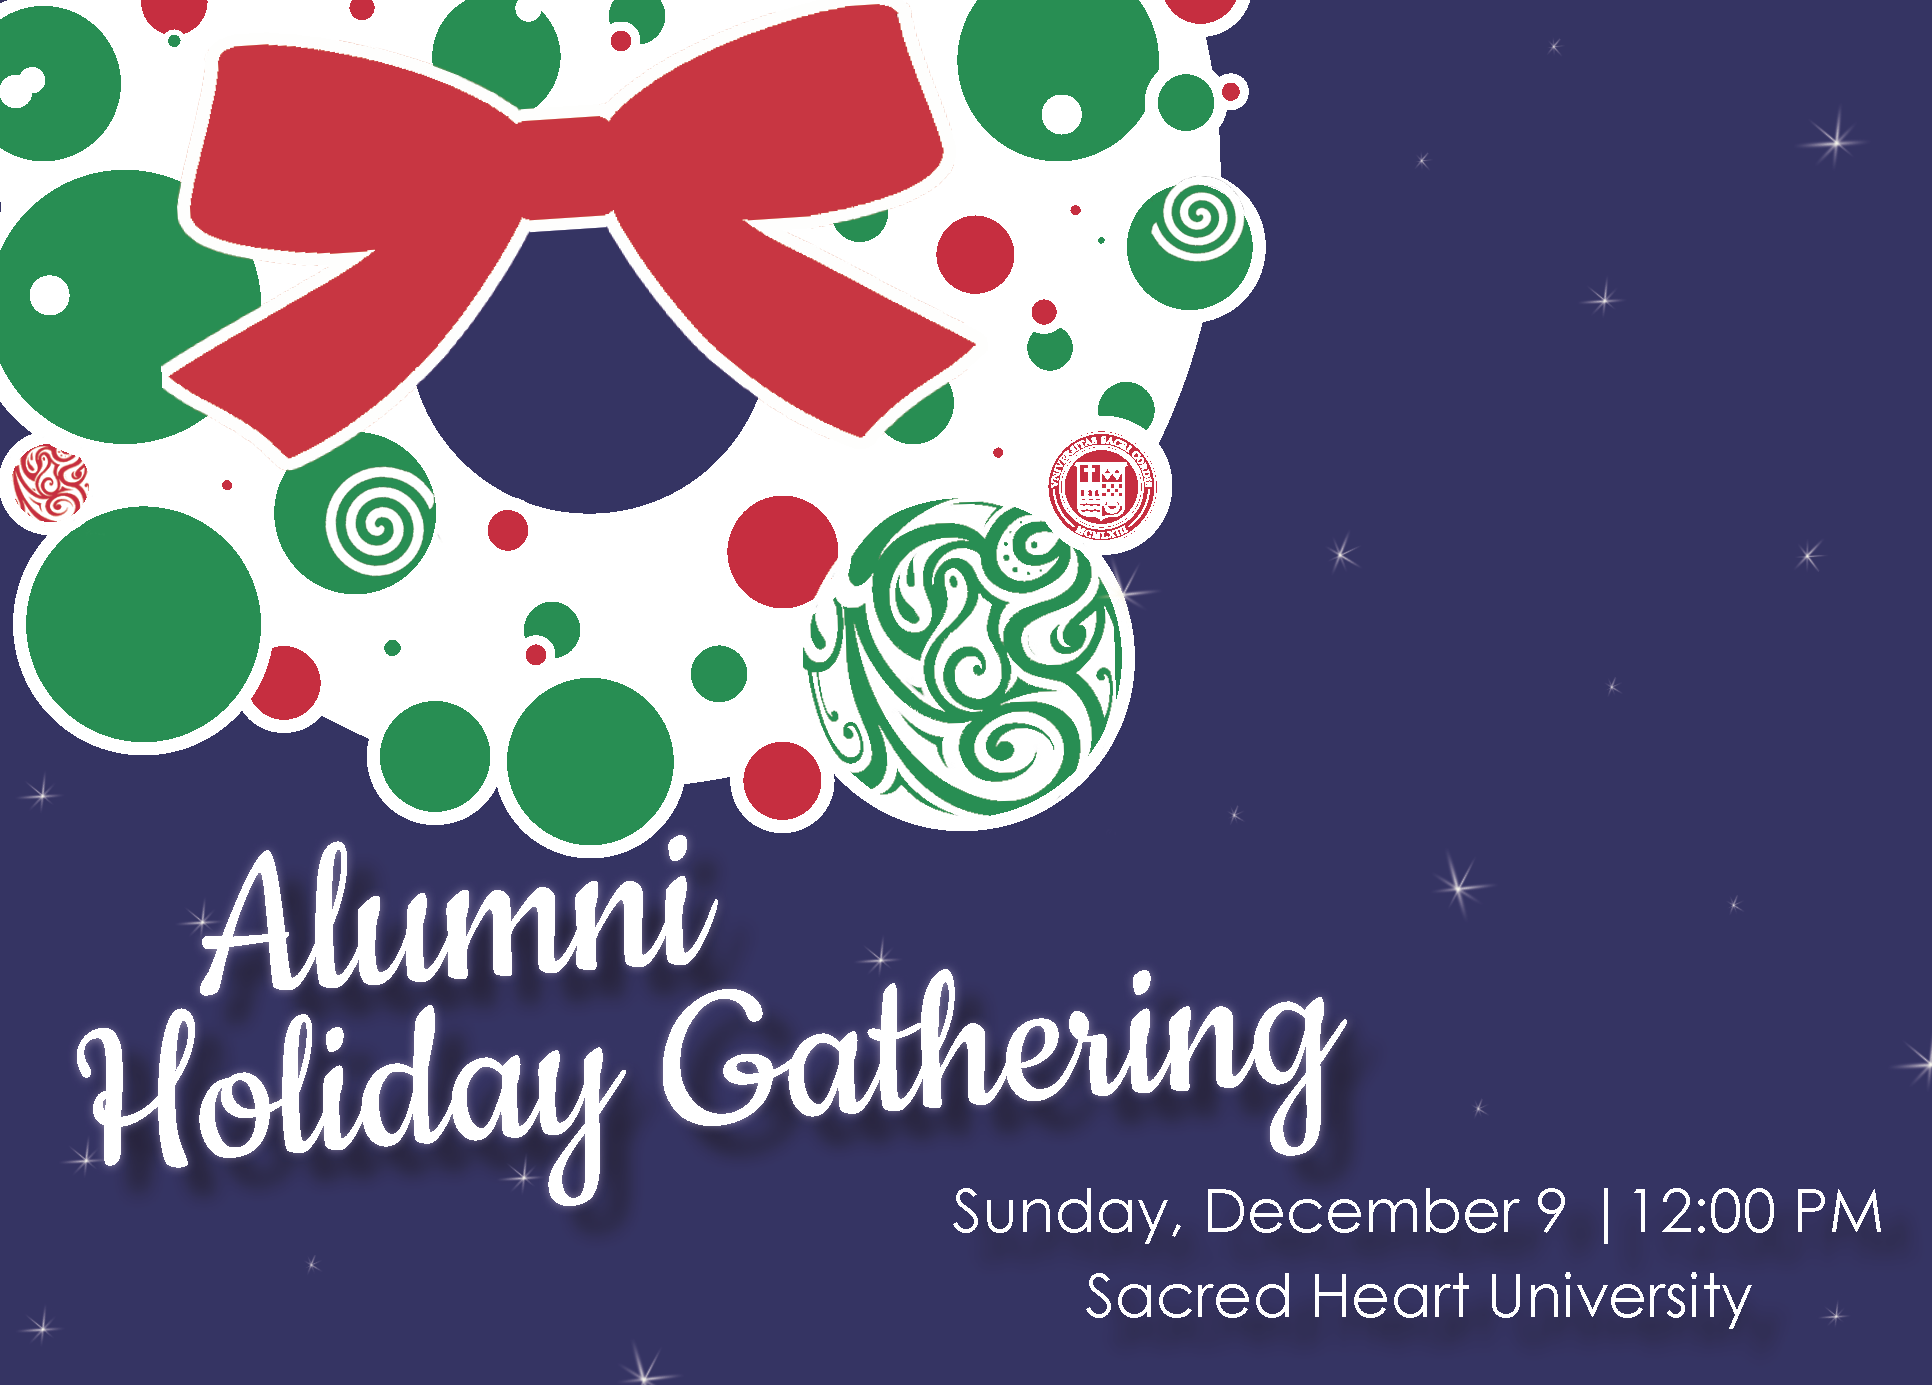 Holiday Gathering Invite